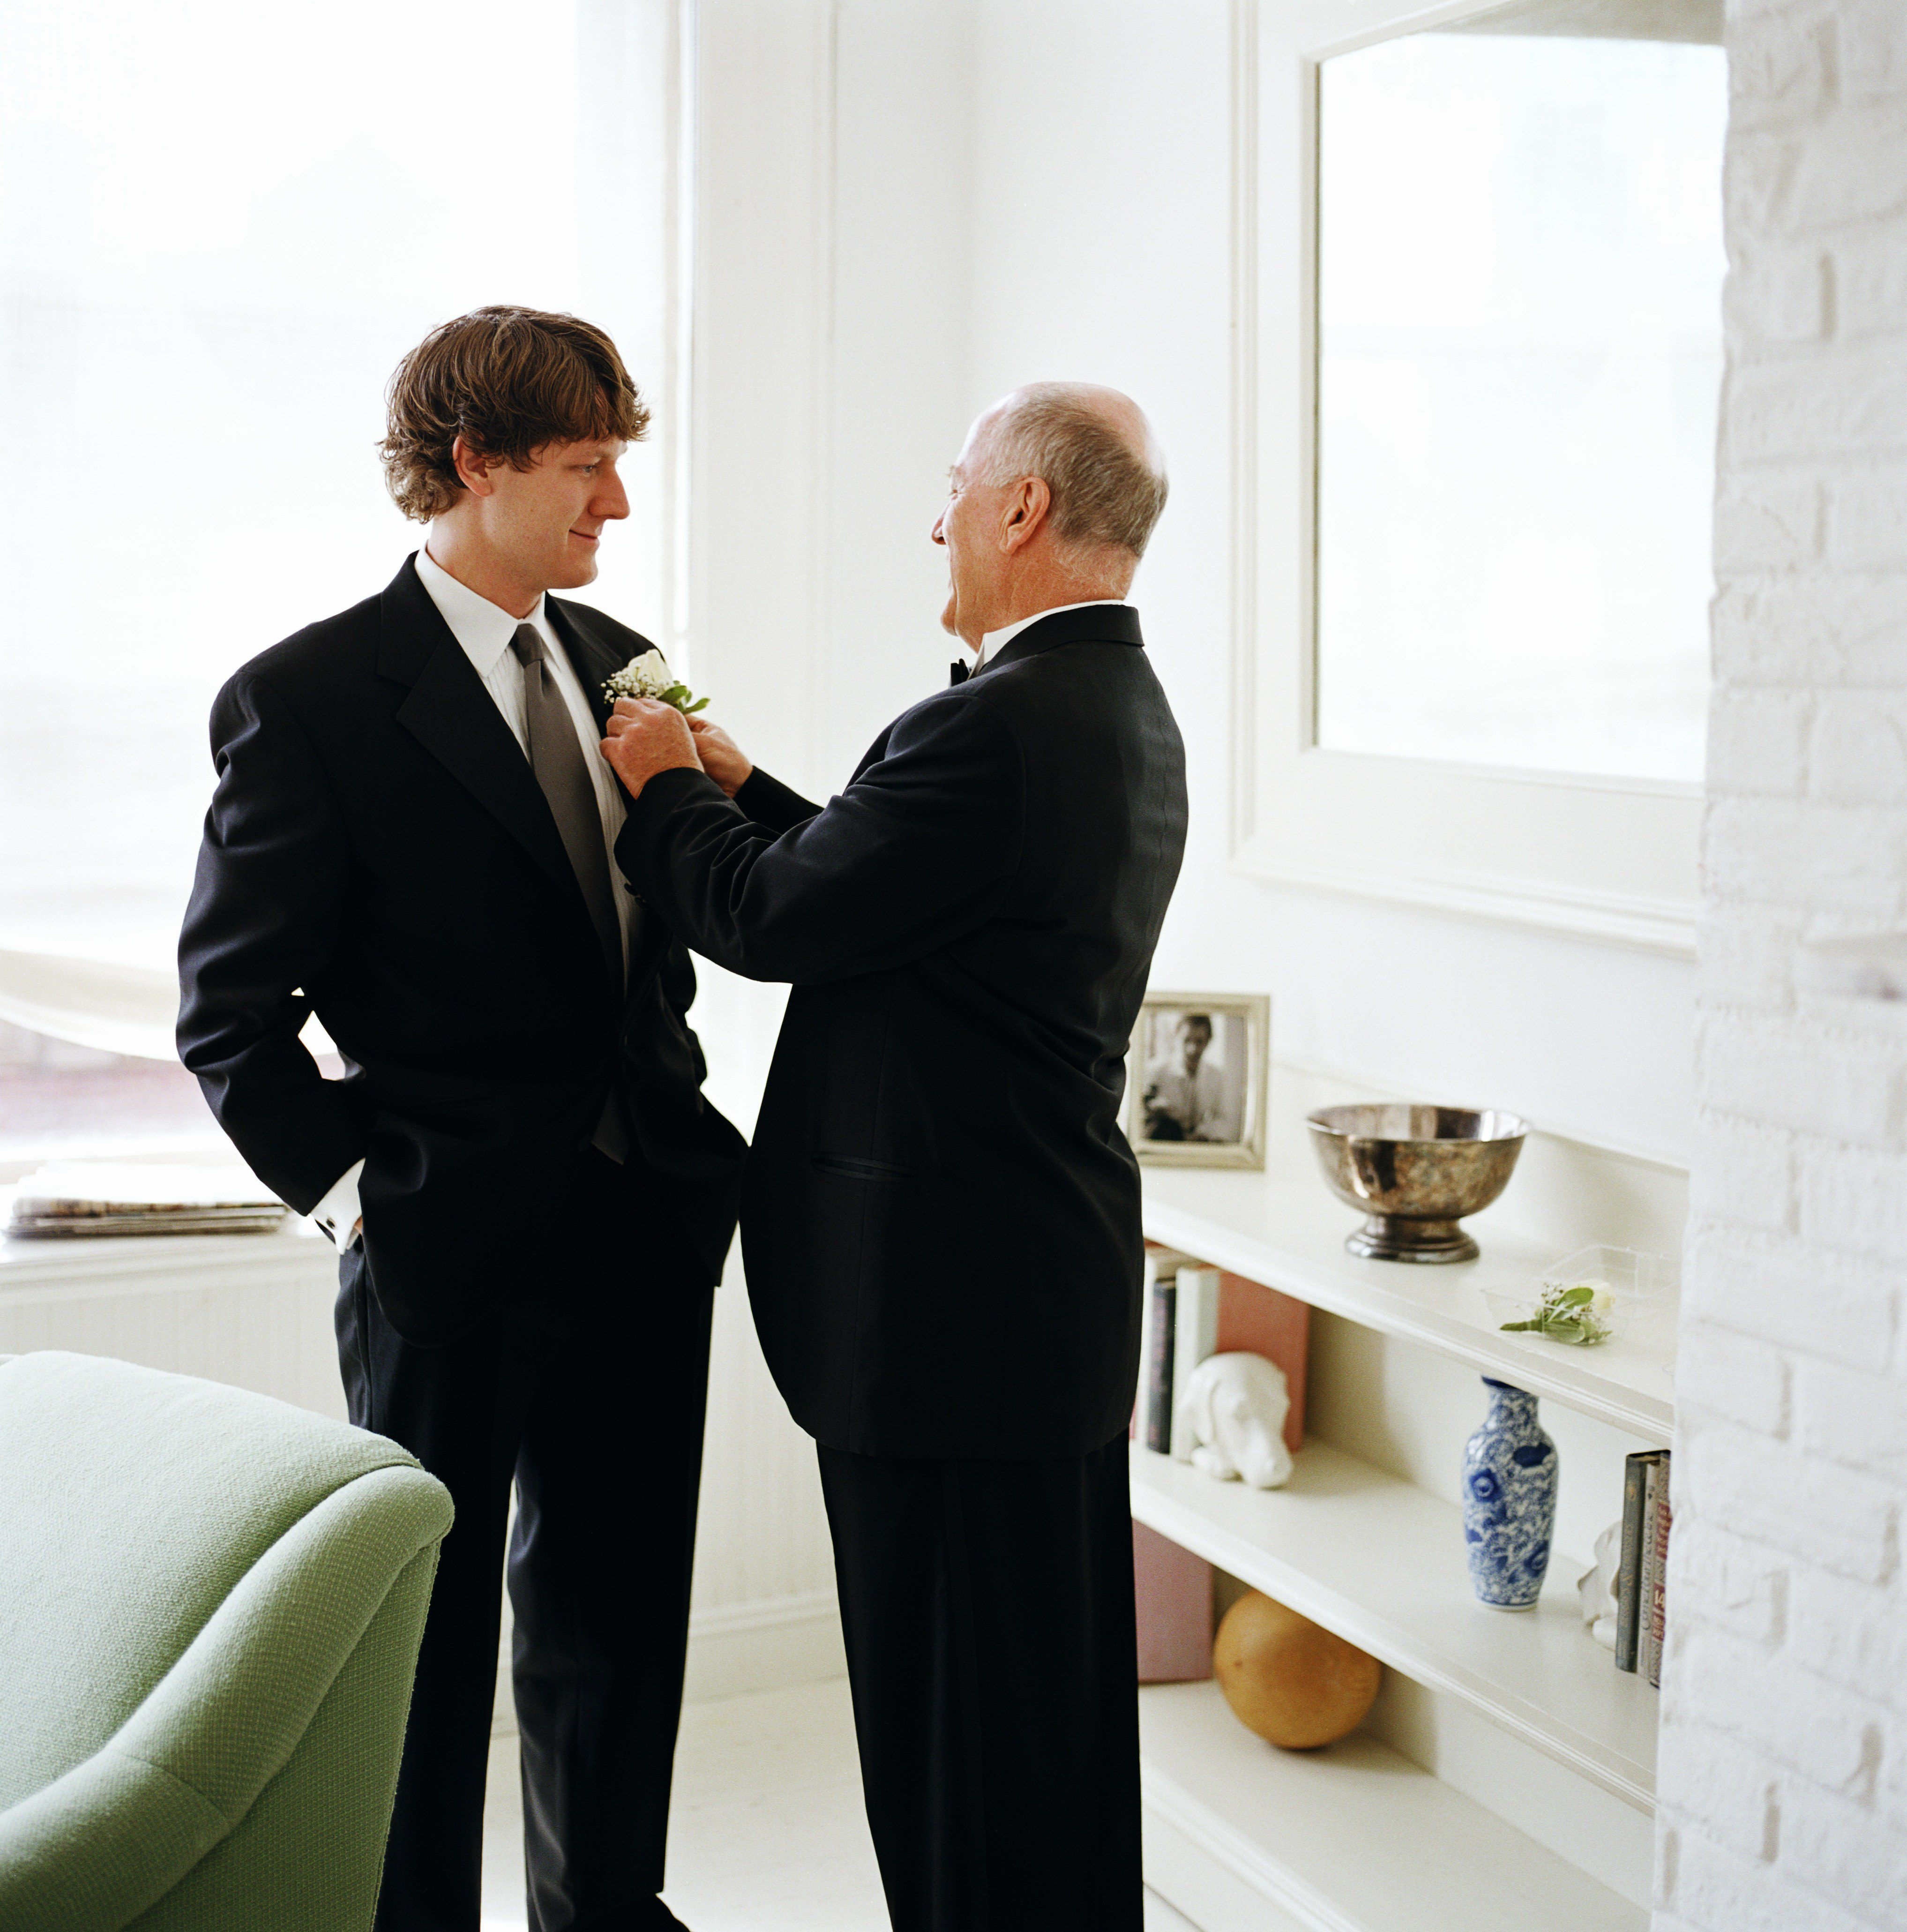 Should The Father Of The Bride Match The Groomsmen?